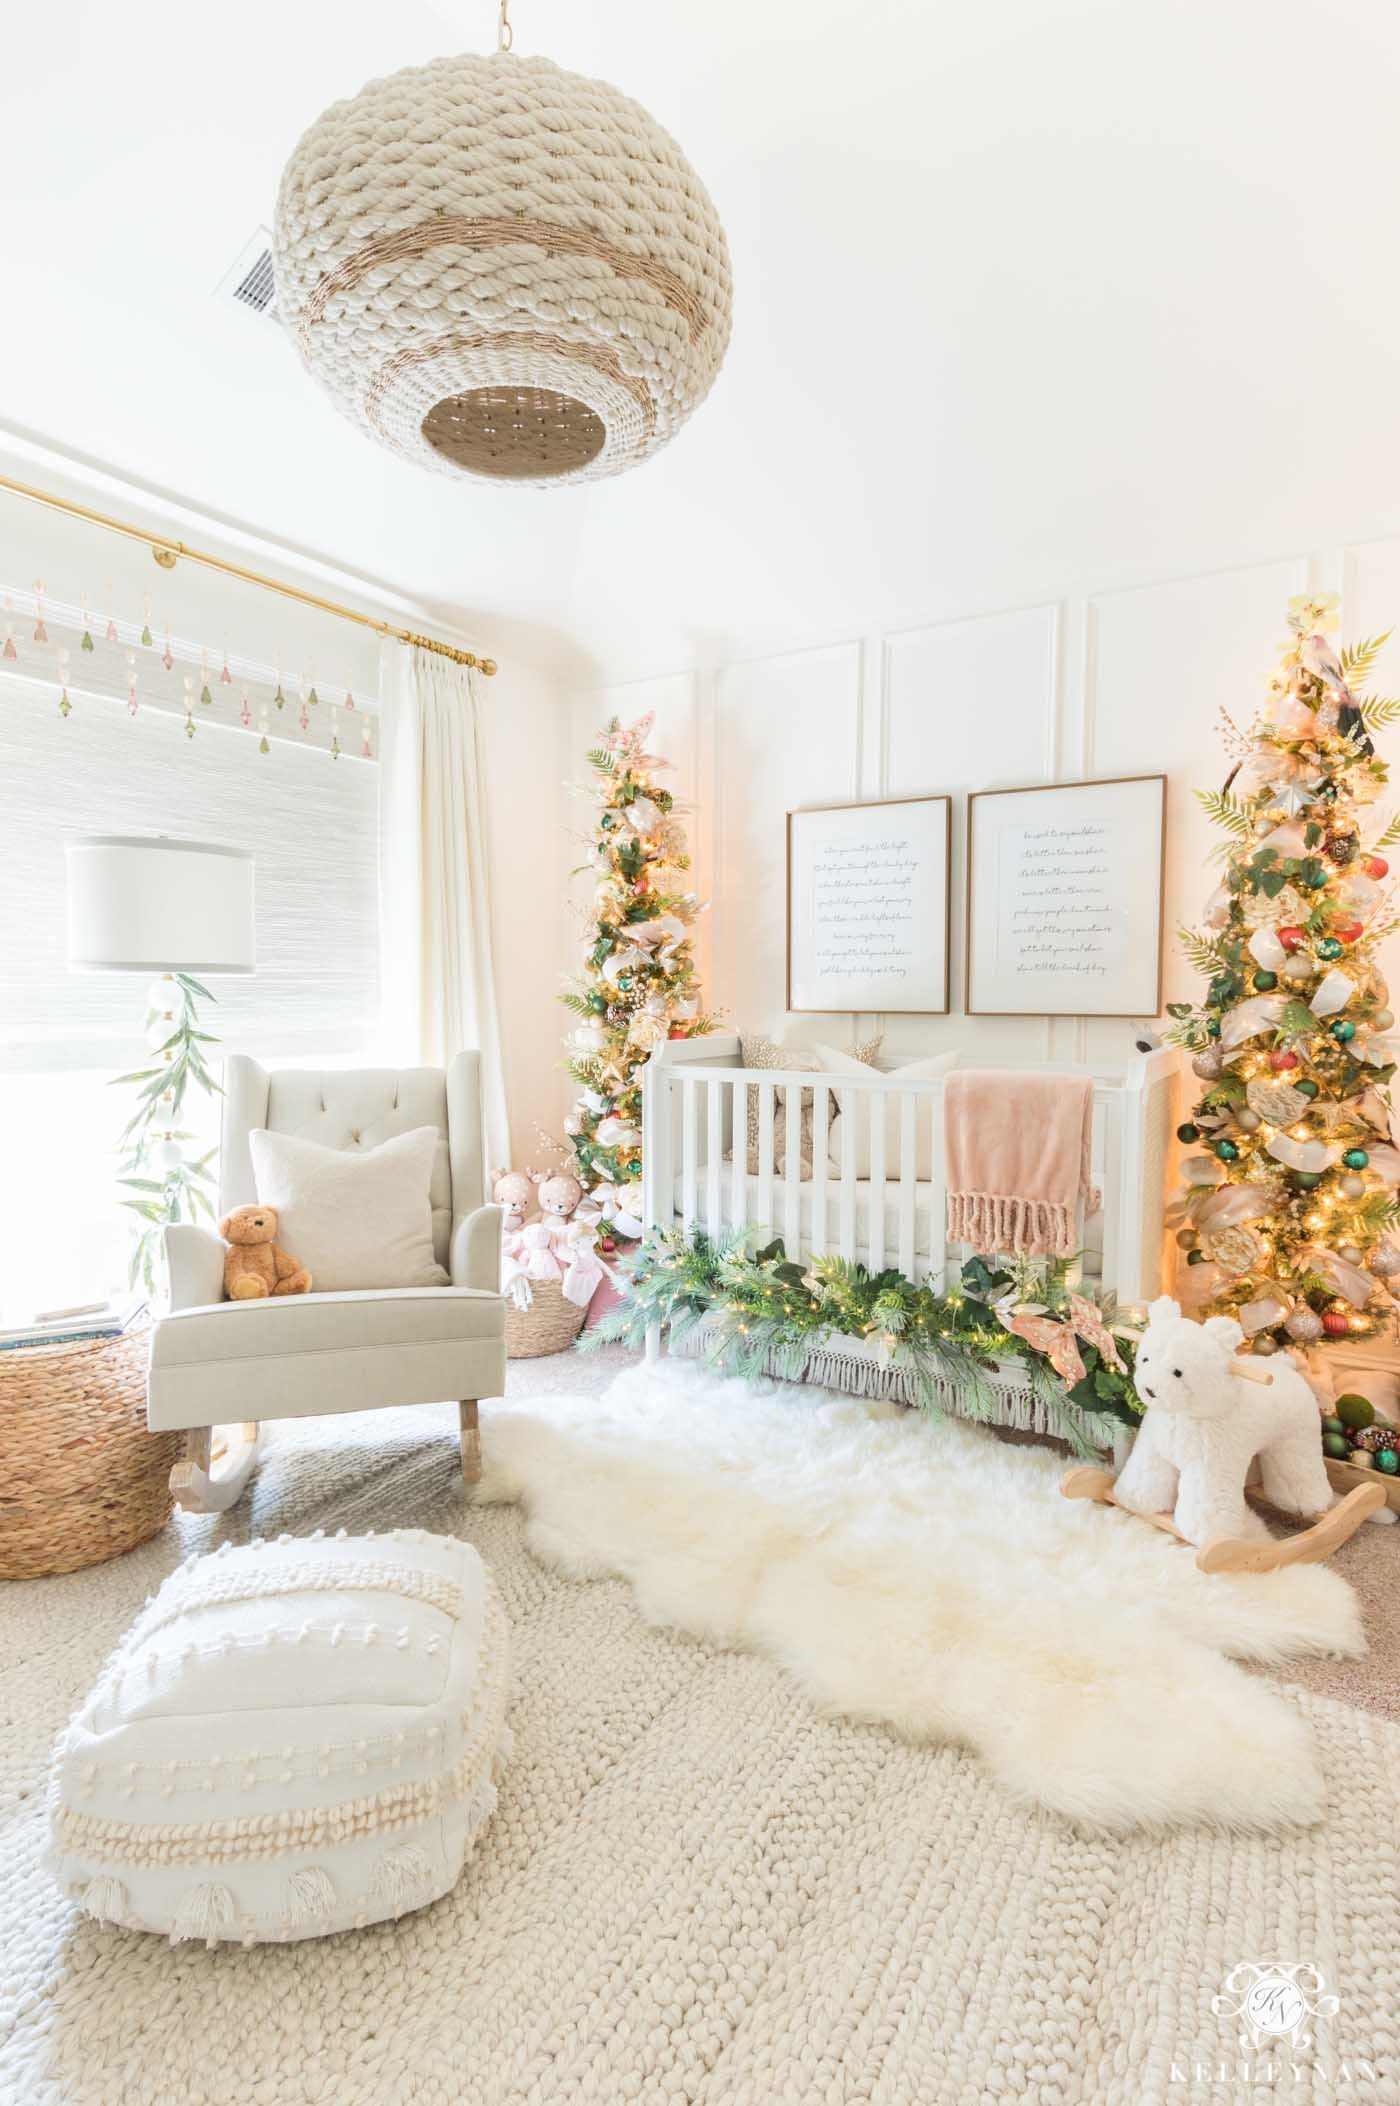 Nursery Christmas Decorations Whimsical Bedroom Ideas Kelley Nan Whimsical Bedroom Christmas Decorations Bedroom Plaid Christmas Decor